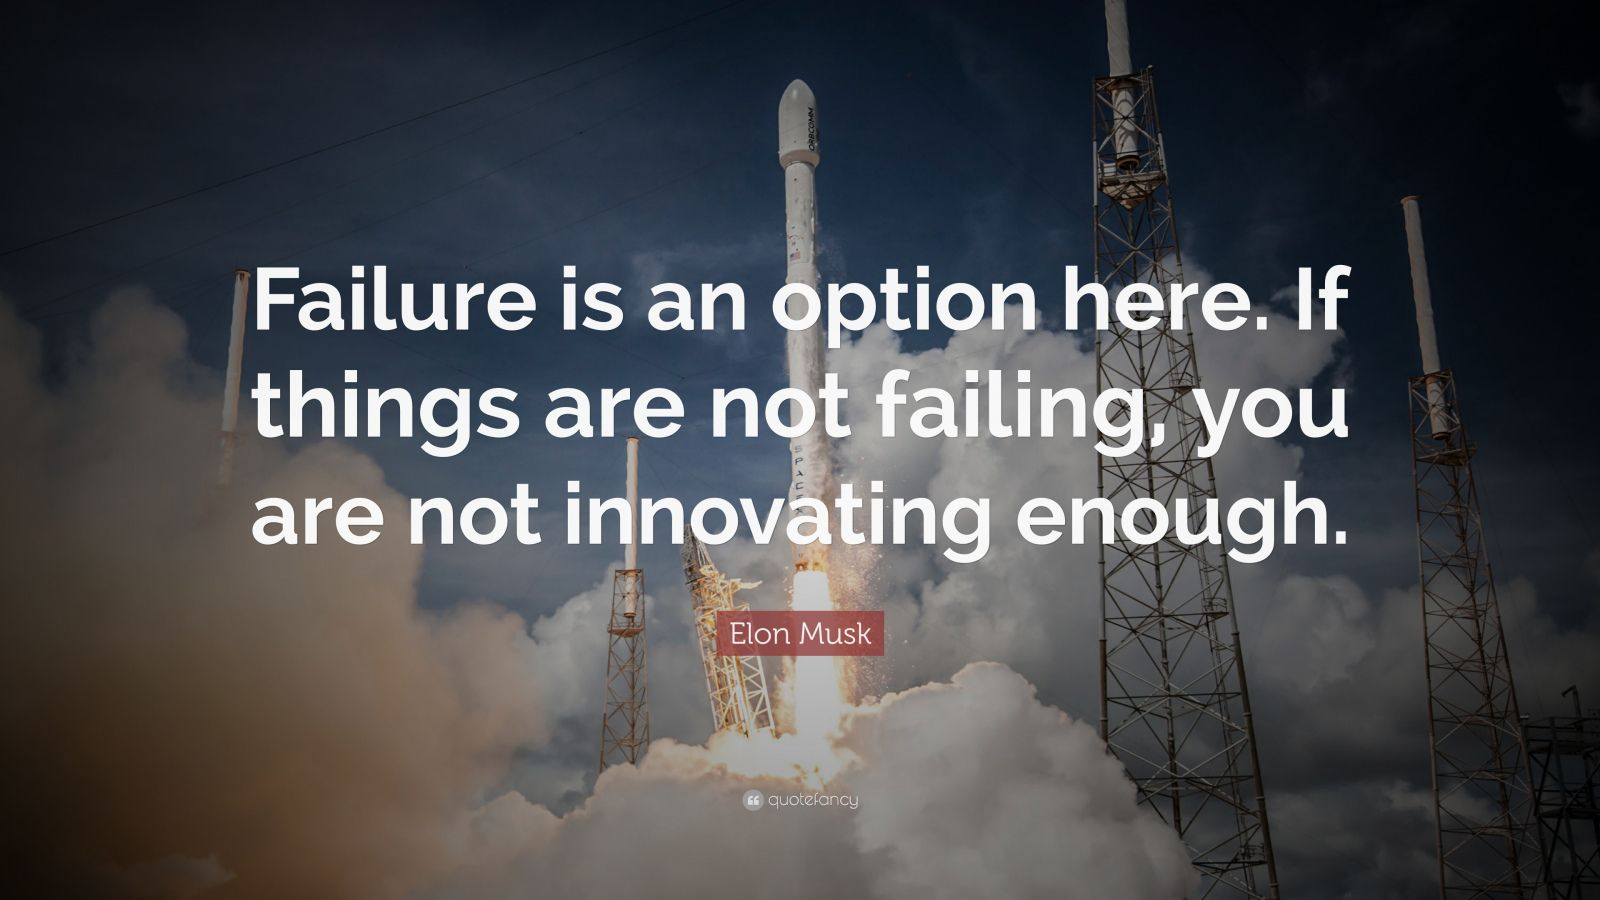 Steve Jobs Motivational Quotes Wallpaper Elon Musk Quote Failure Is An Option Here If Things Are